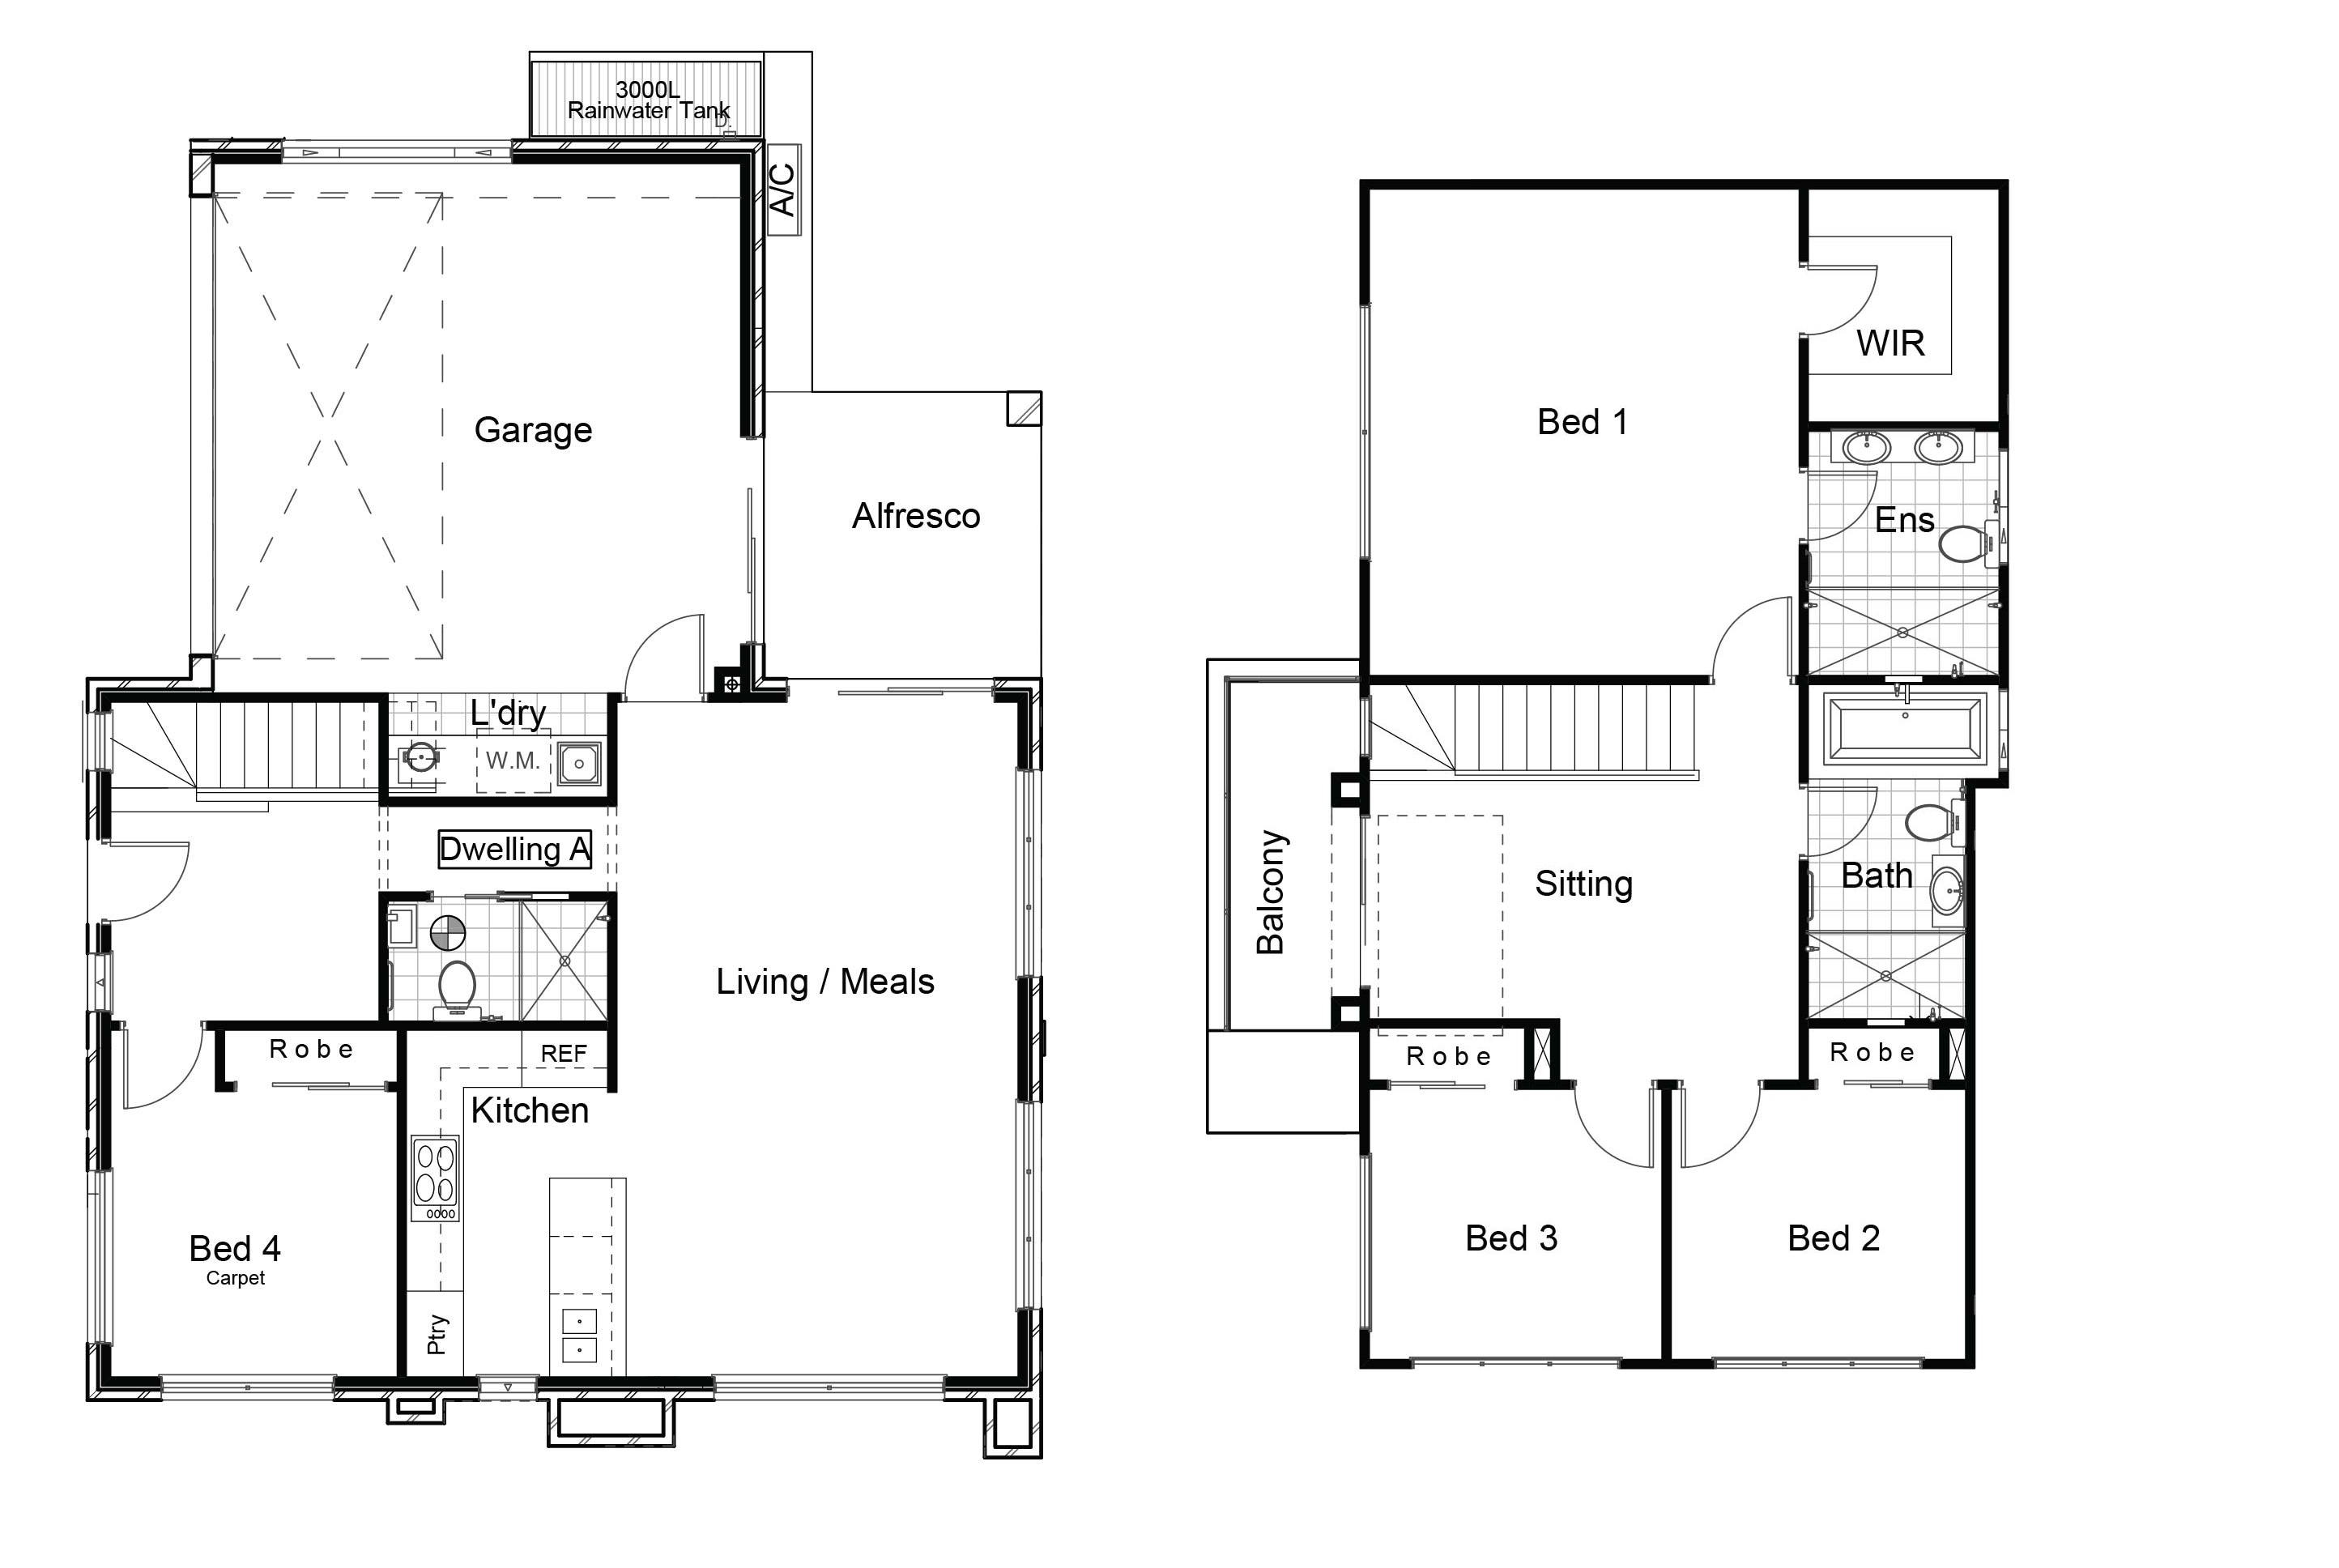 22378803 BOX HILL NSW 2765 - Floor plan